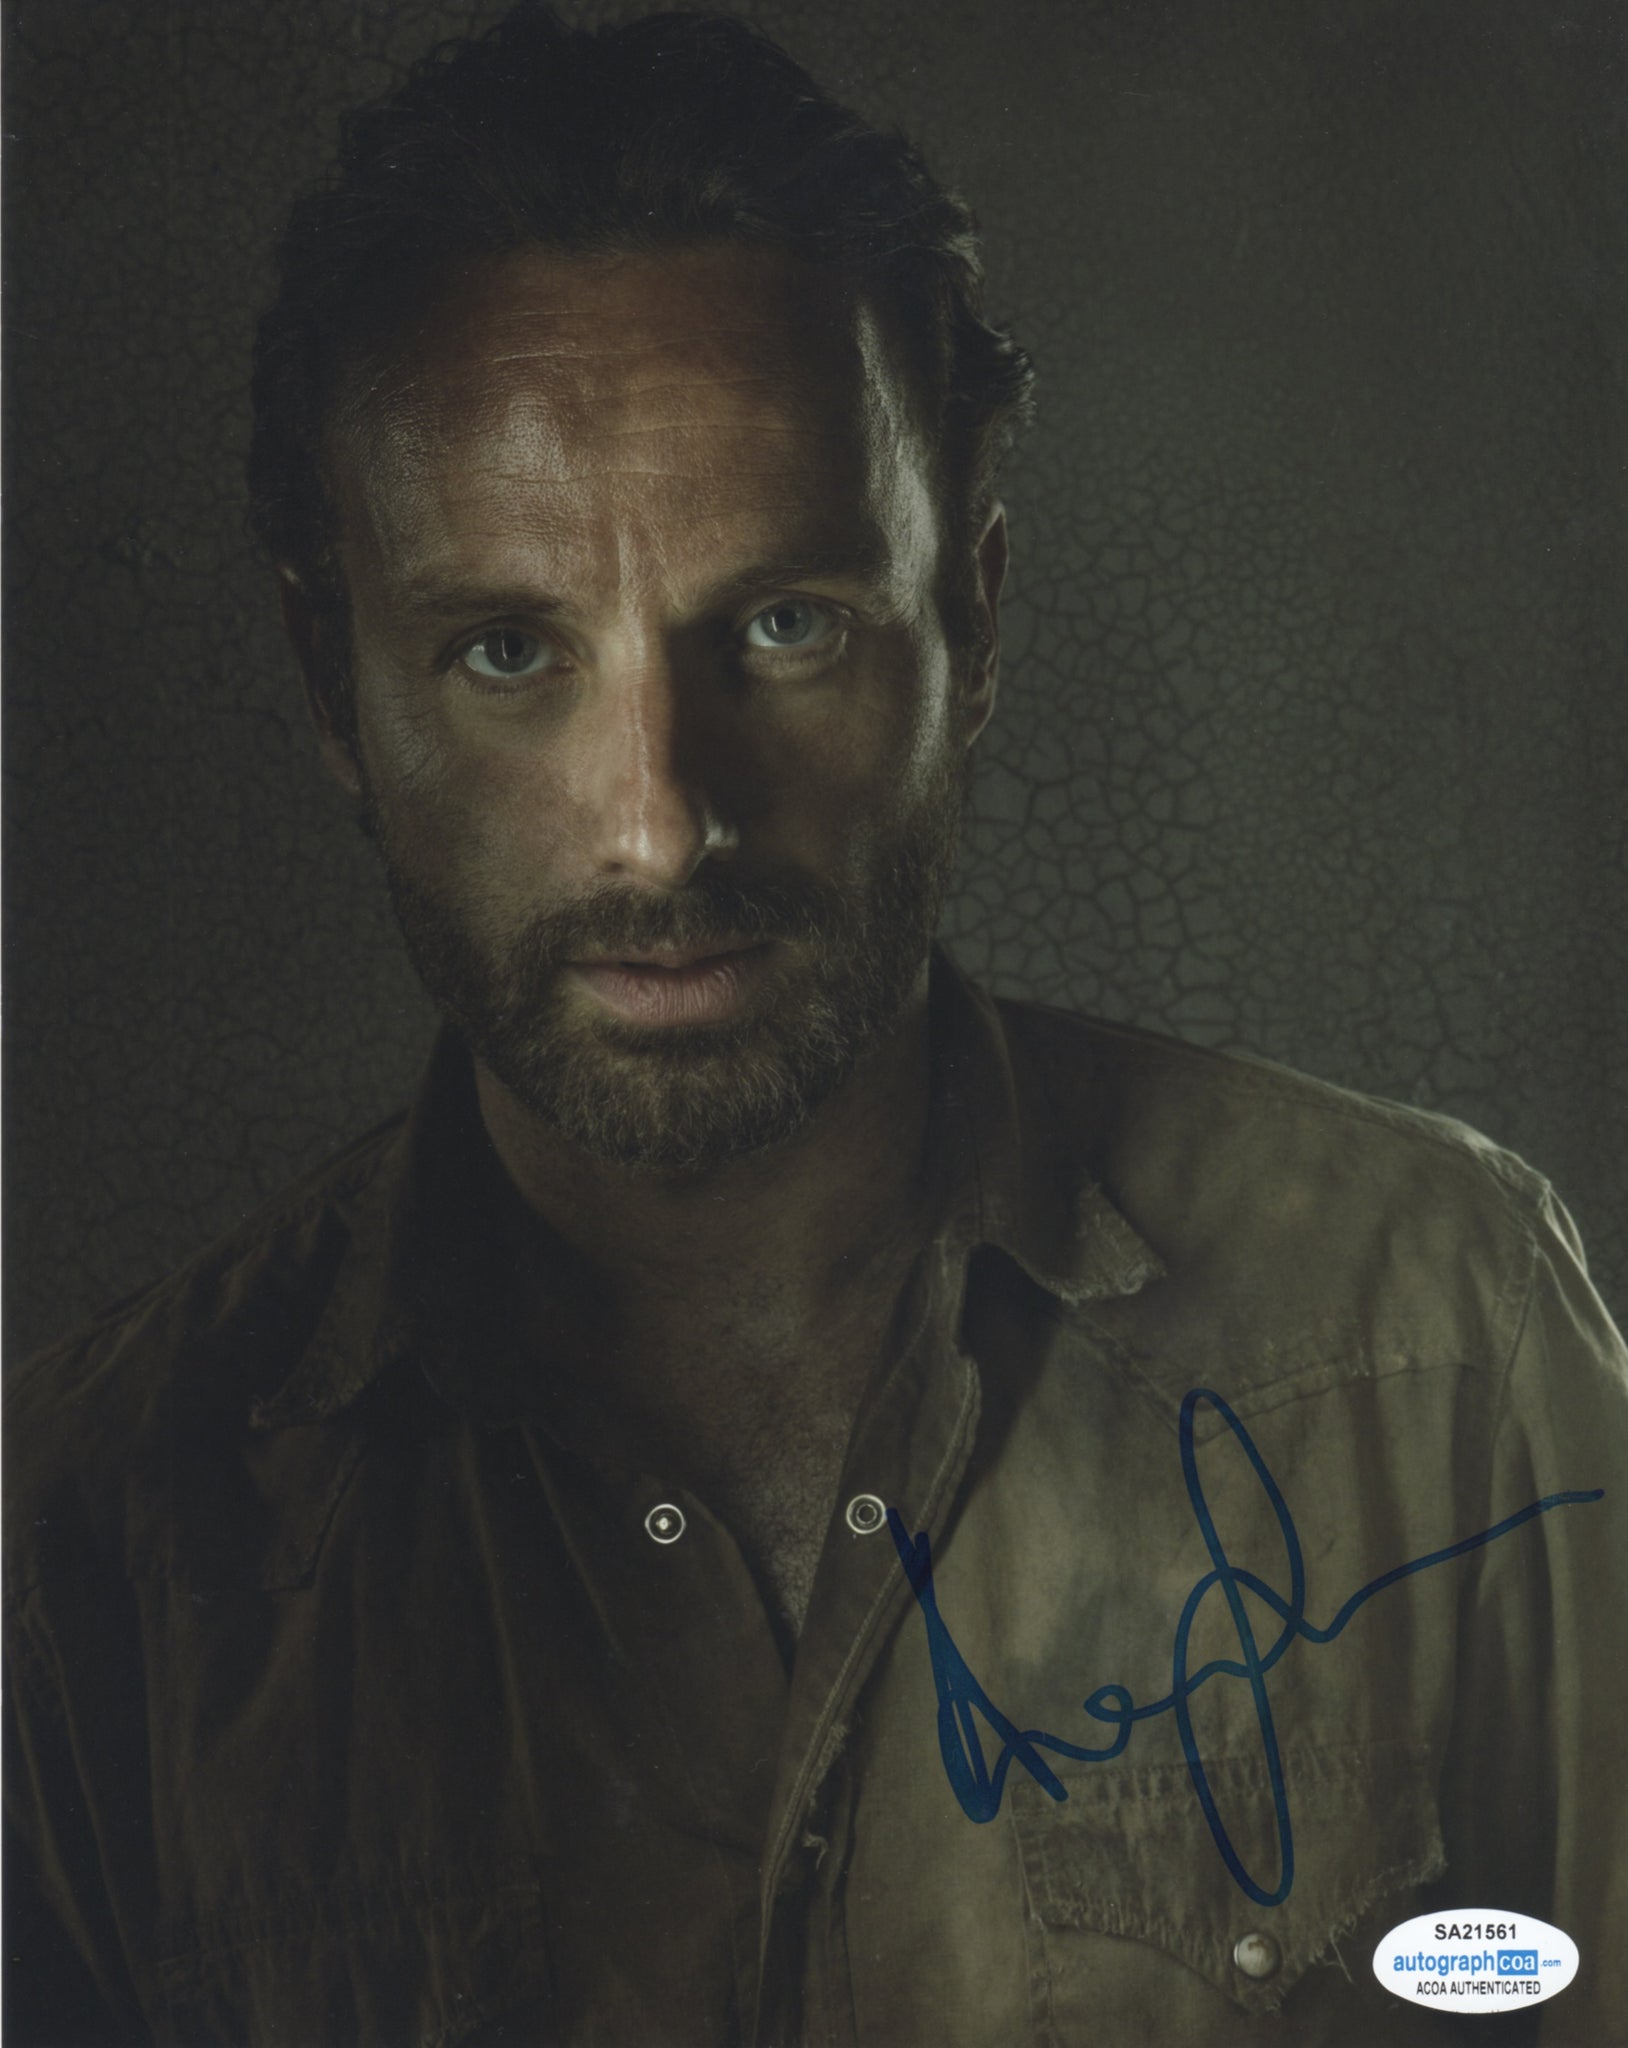 Andrew Lincoln Walking Dead Signed Autograph 8x10 Photo ACOA - Outlaw Hobbies Authentic Autographs